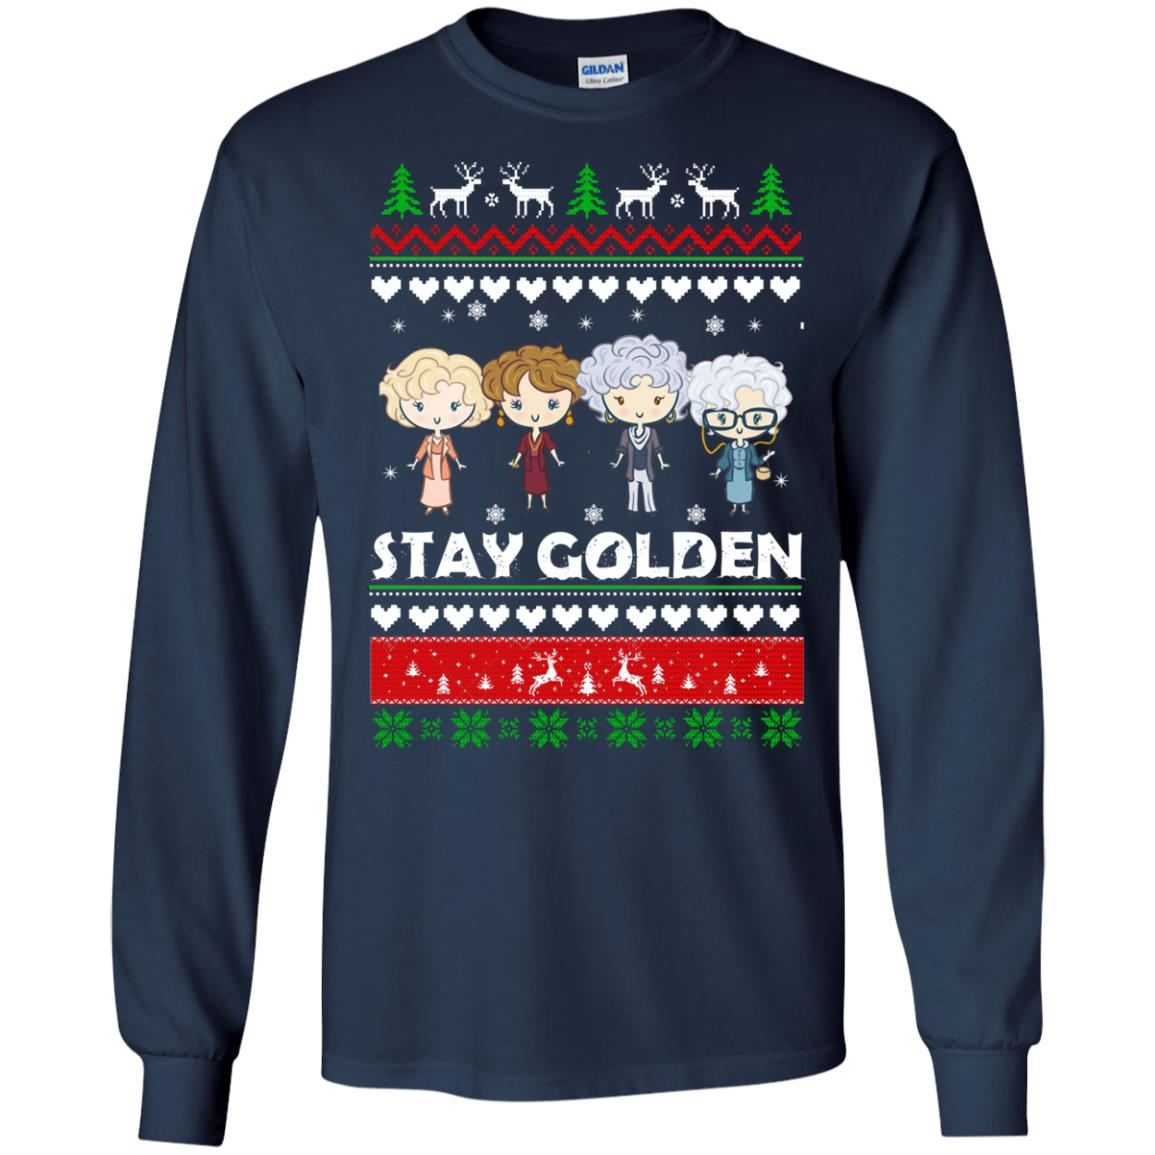 image 702 - Golden Girls Stay Golden Ugly Christmas Sweater, Hoodie